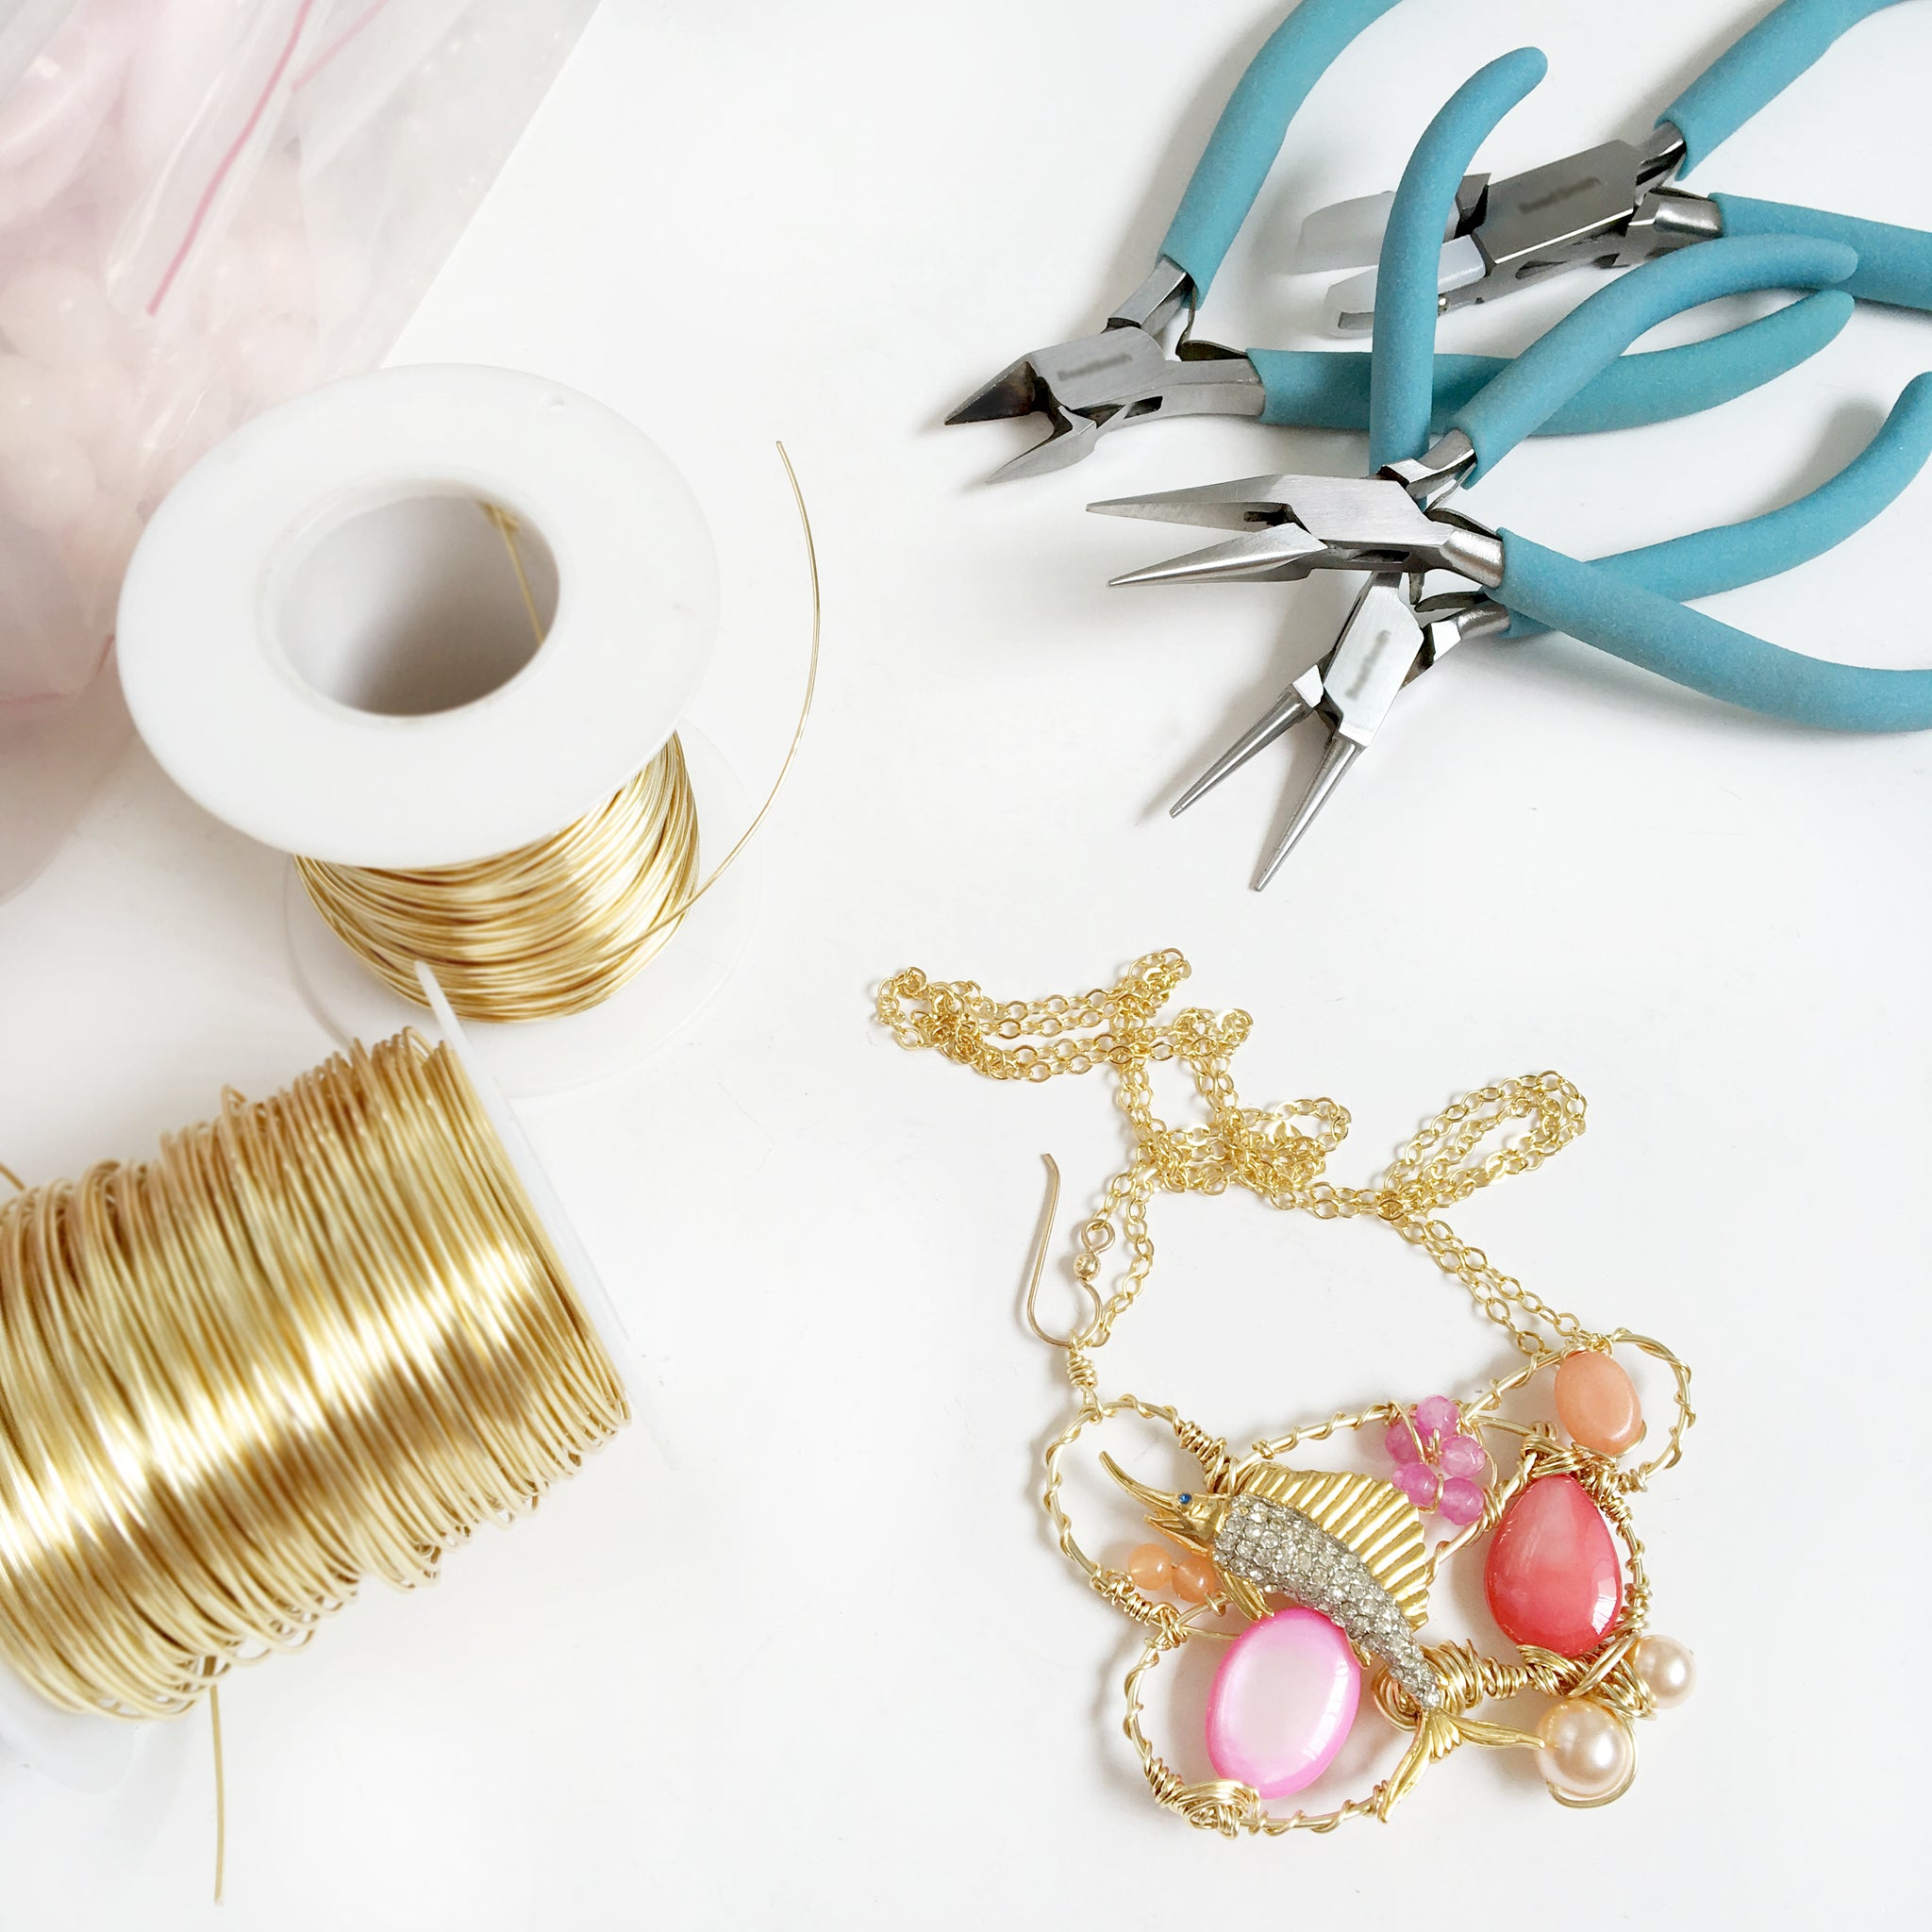 Craft Class / Creative Wired Jewellery - Statement Necklace / 10 Dec